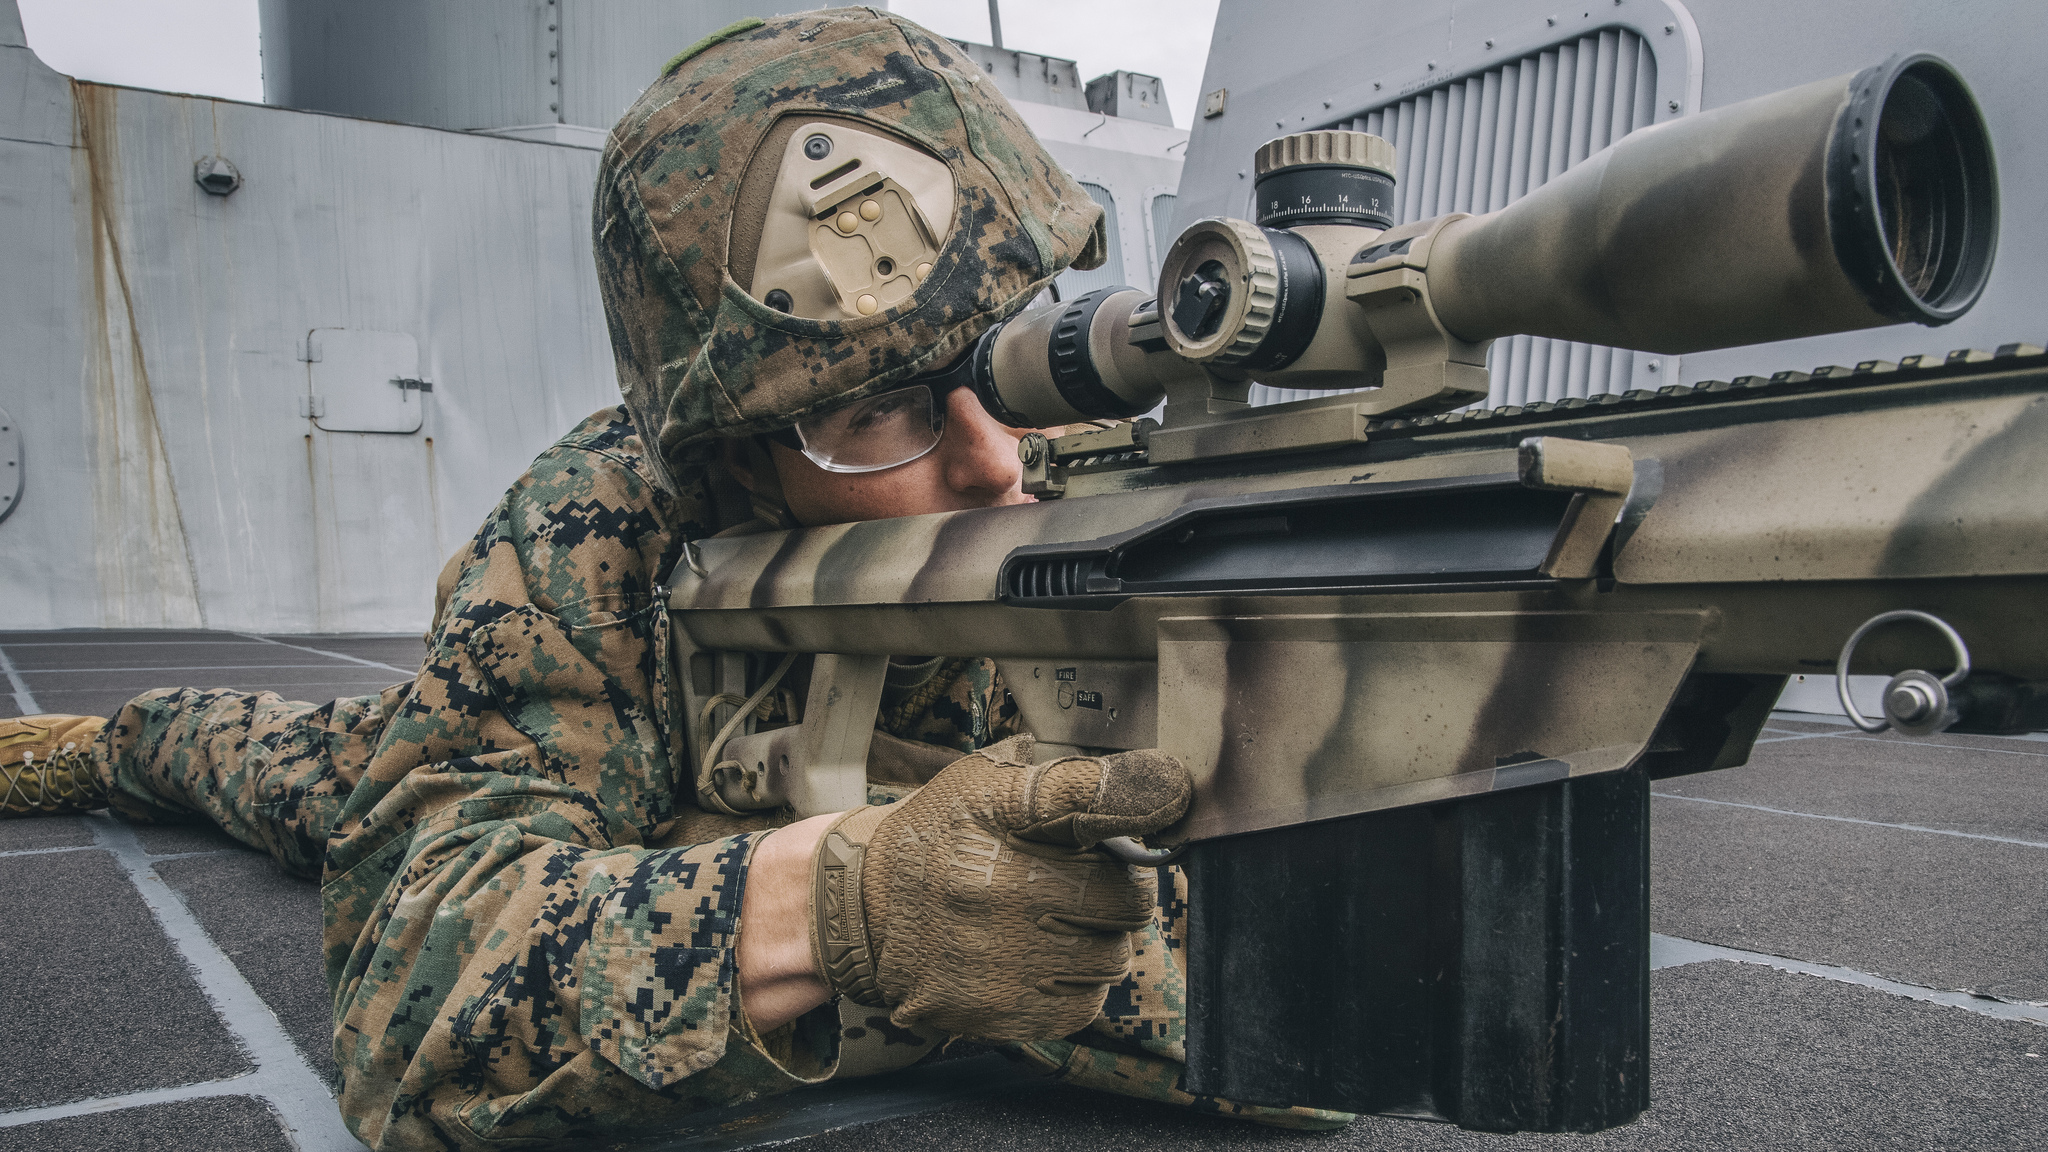 1st Lt. Nathaniel Lambert sights in behind a .50-caliber Special Applications Scoped Rifle on Feb. 20, 2019, during a simulated strait transit aboard the San Antonio-class amphibious transport dock ship USS John P. Murtha (LPD 26) in the Pacific Ocean. (Lance Cpl. Israel Chincio/Marine Corps)